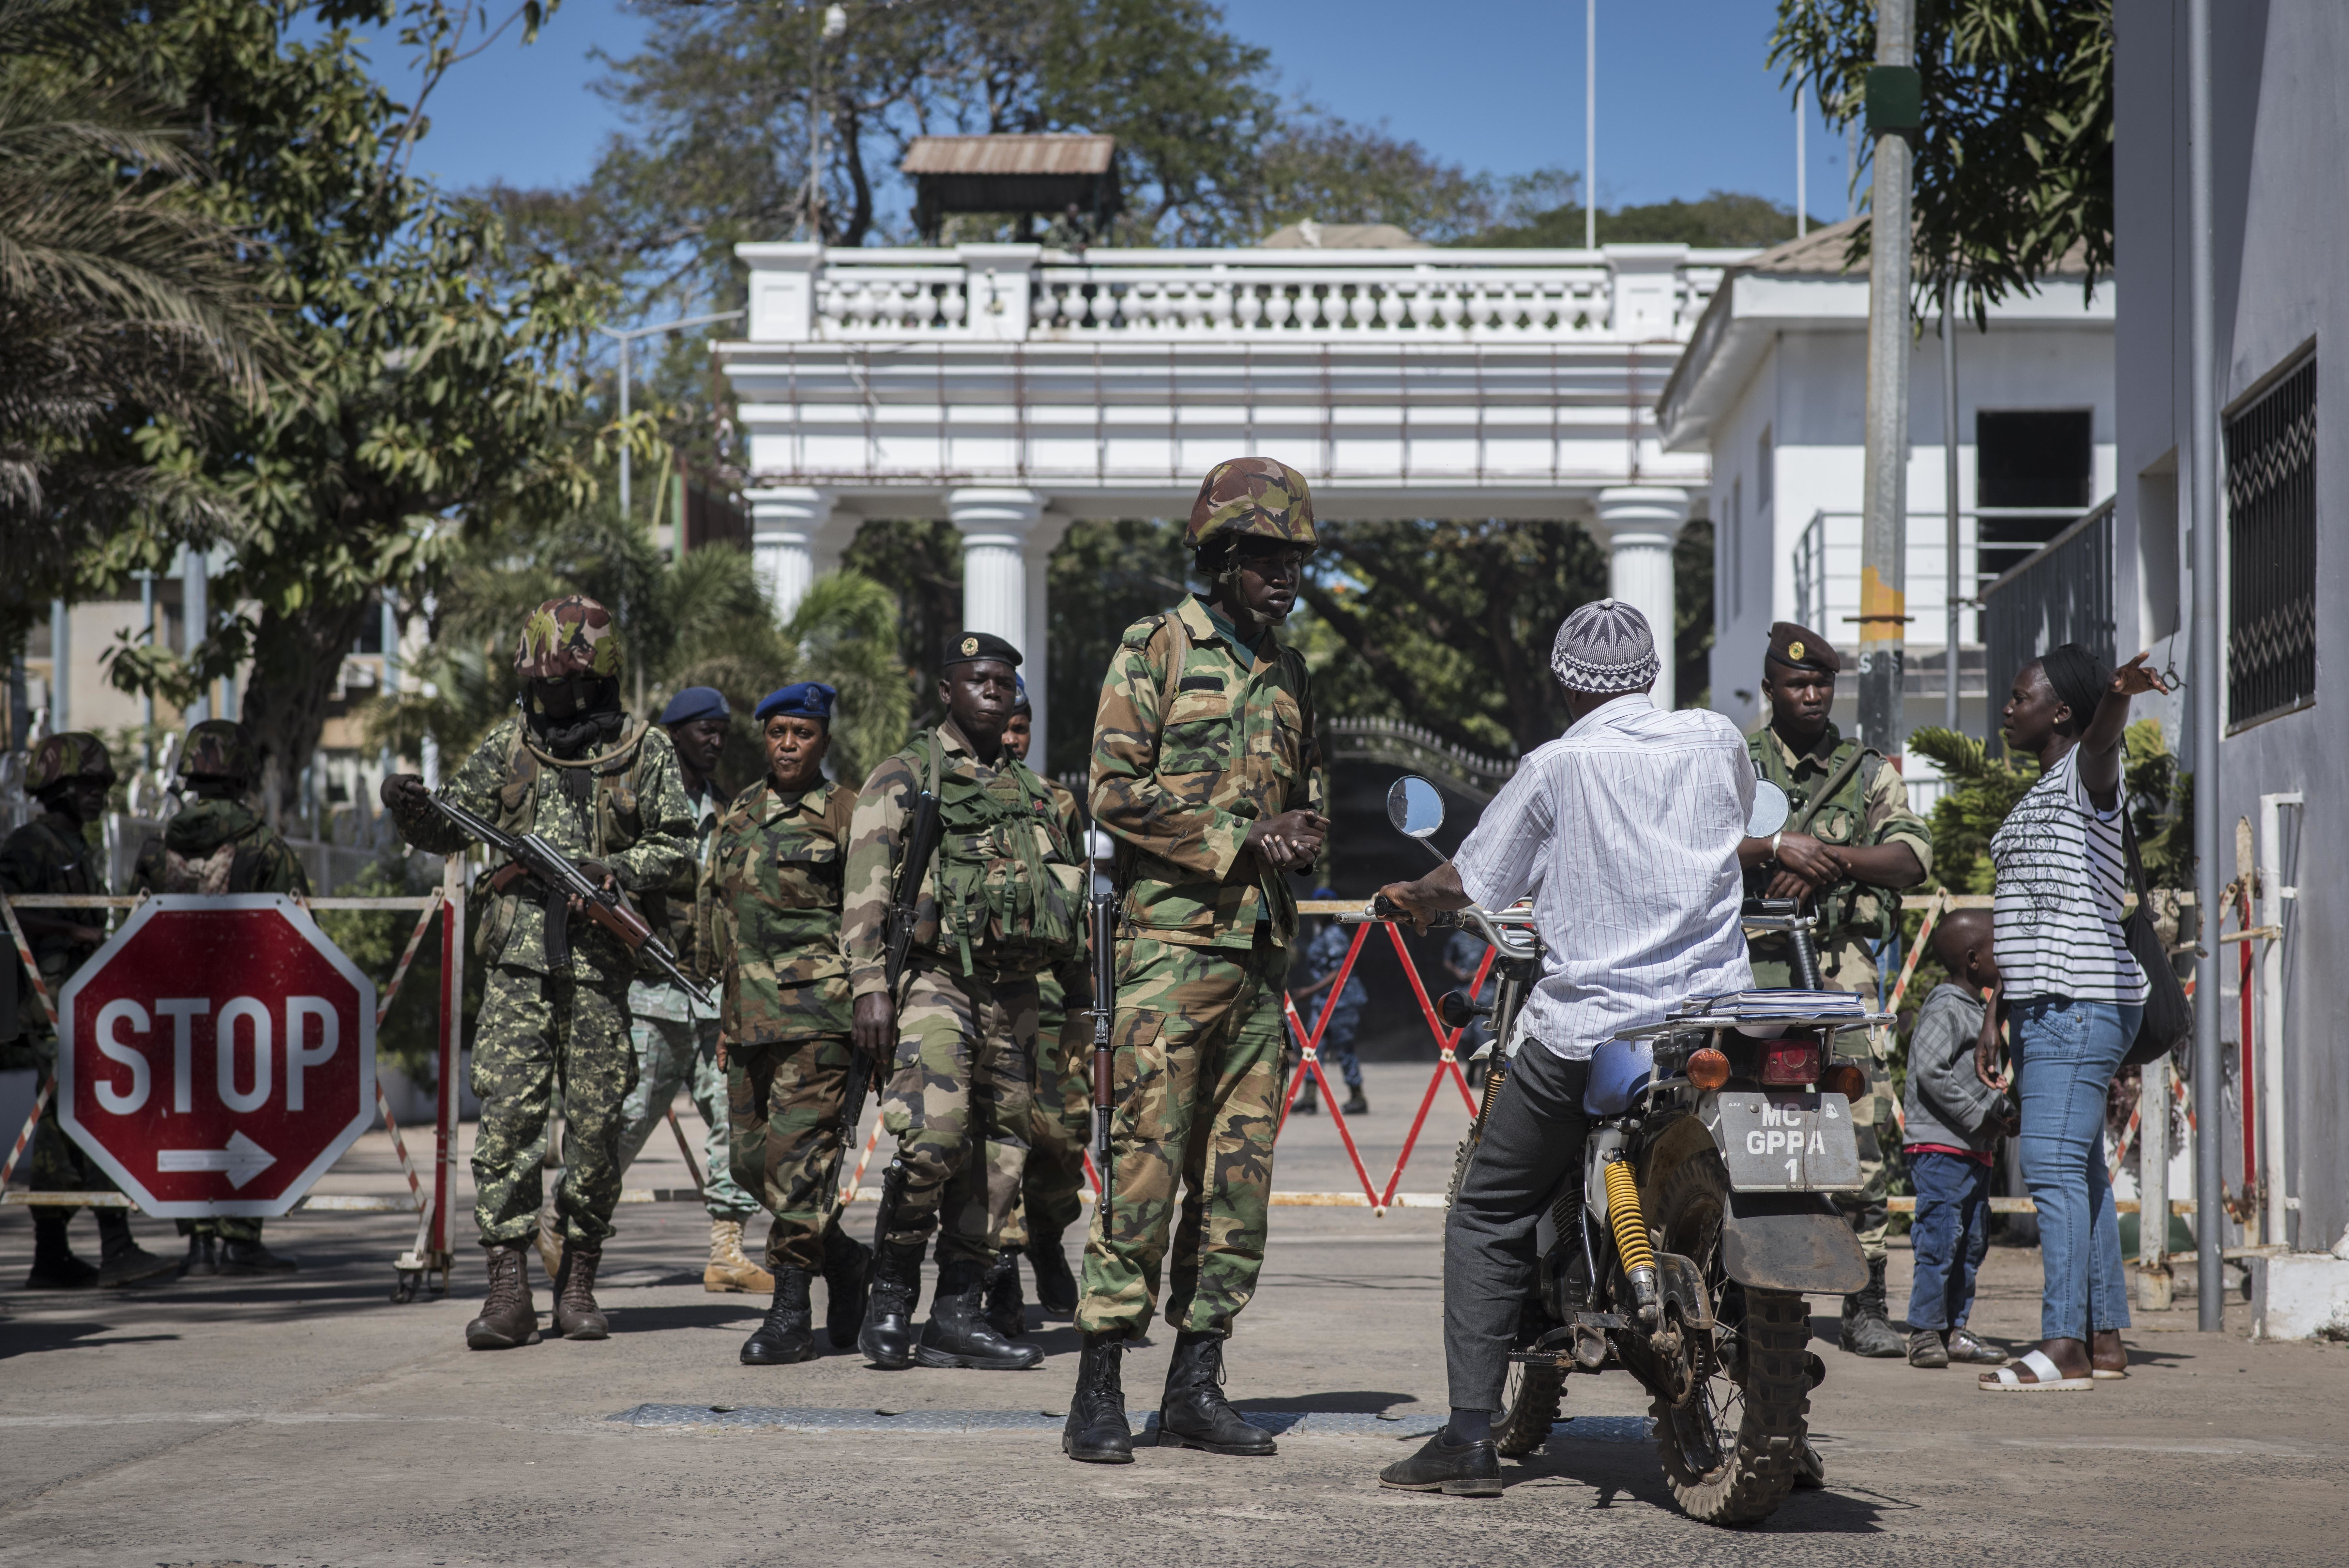 Senegalese soldiers check a motorcyclist at the entrance of the State House compound in Banjul, Gambia, Jan. 24, 2017. ECOWAS troops have moved into the State House to prepare for the return of President Adama Barrow.